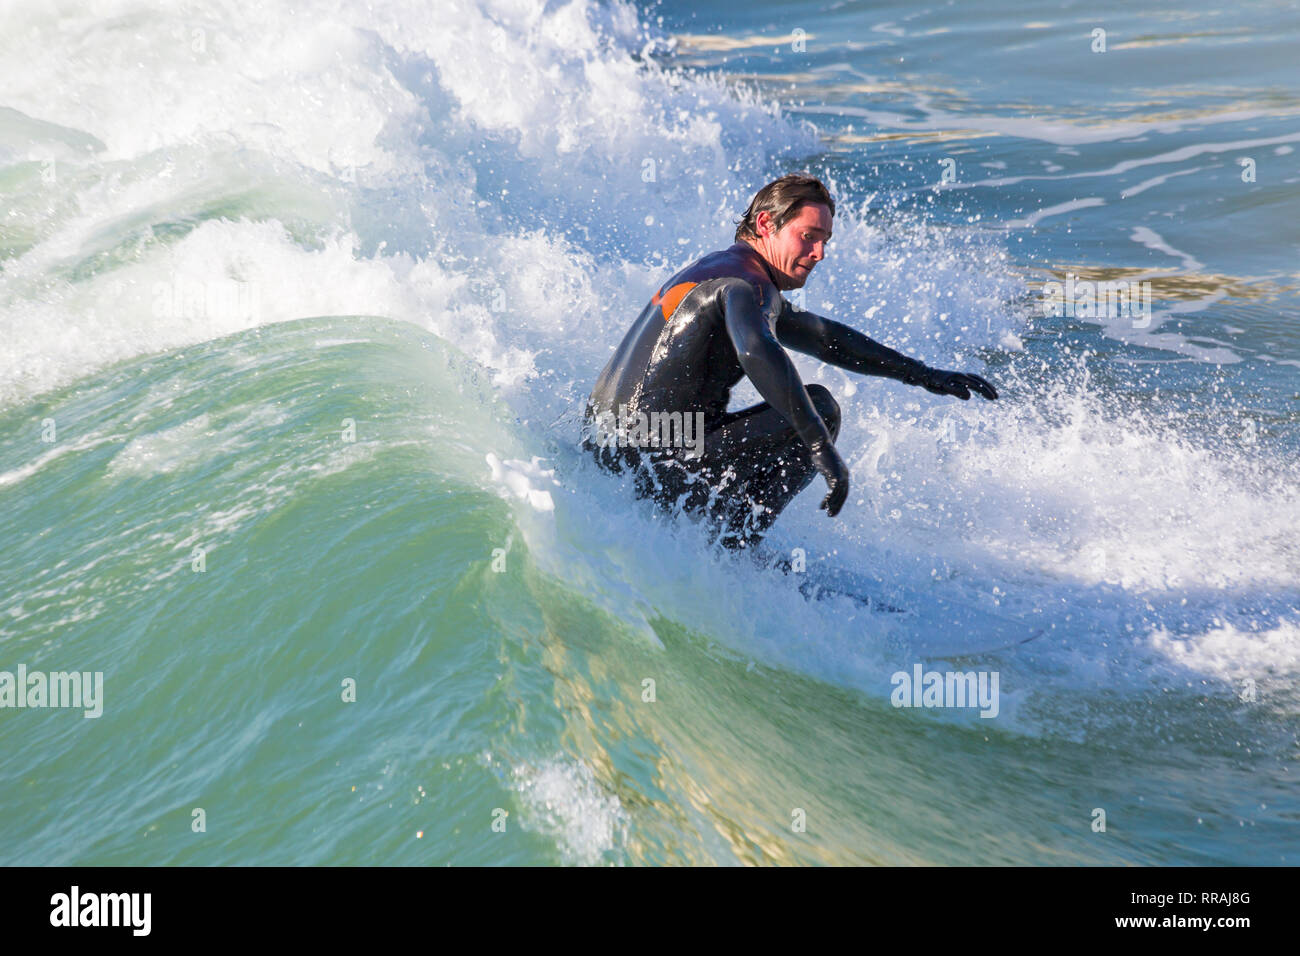 Bournemouth, Dorset, UK. 25th Feb, 2019. UK weather: big waves and plenty of surf create ideal surfing conditions for surfers at Bournemouth beach on a lovely warm sunny day expected to be the hottest day of the year and hottest February day ever. Surfer on surf board riding the wave. Credit: Carolyn Jenkins/Alamy Live News - Stock Image